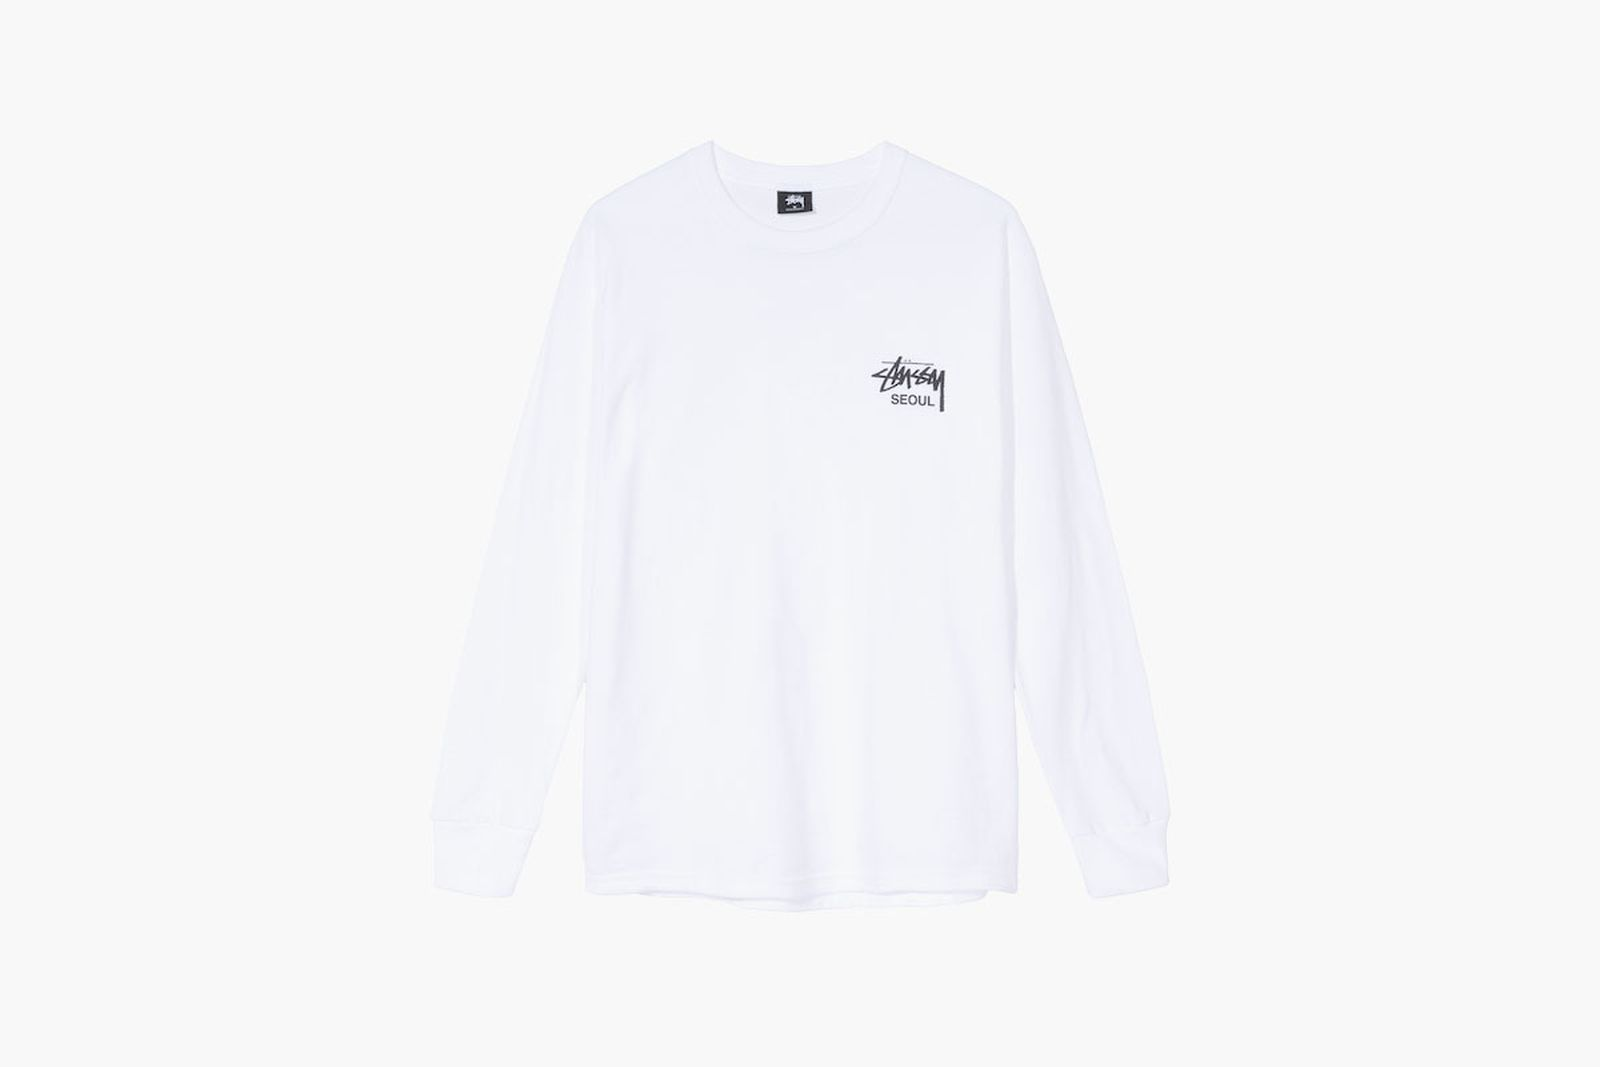 stussy reopening seoul store merch Stüssy